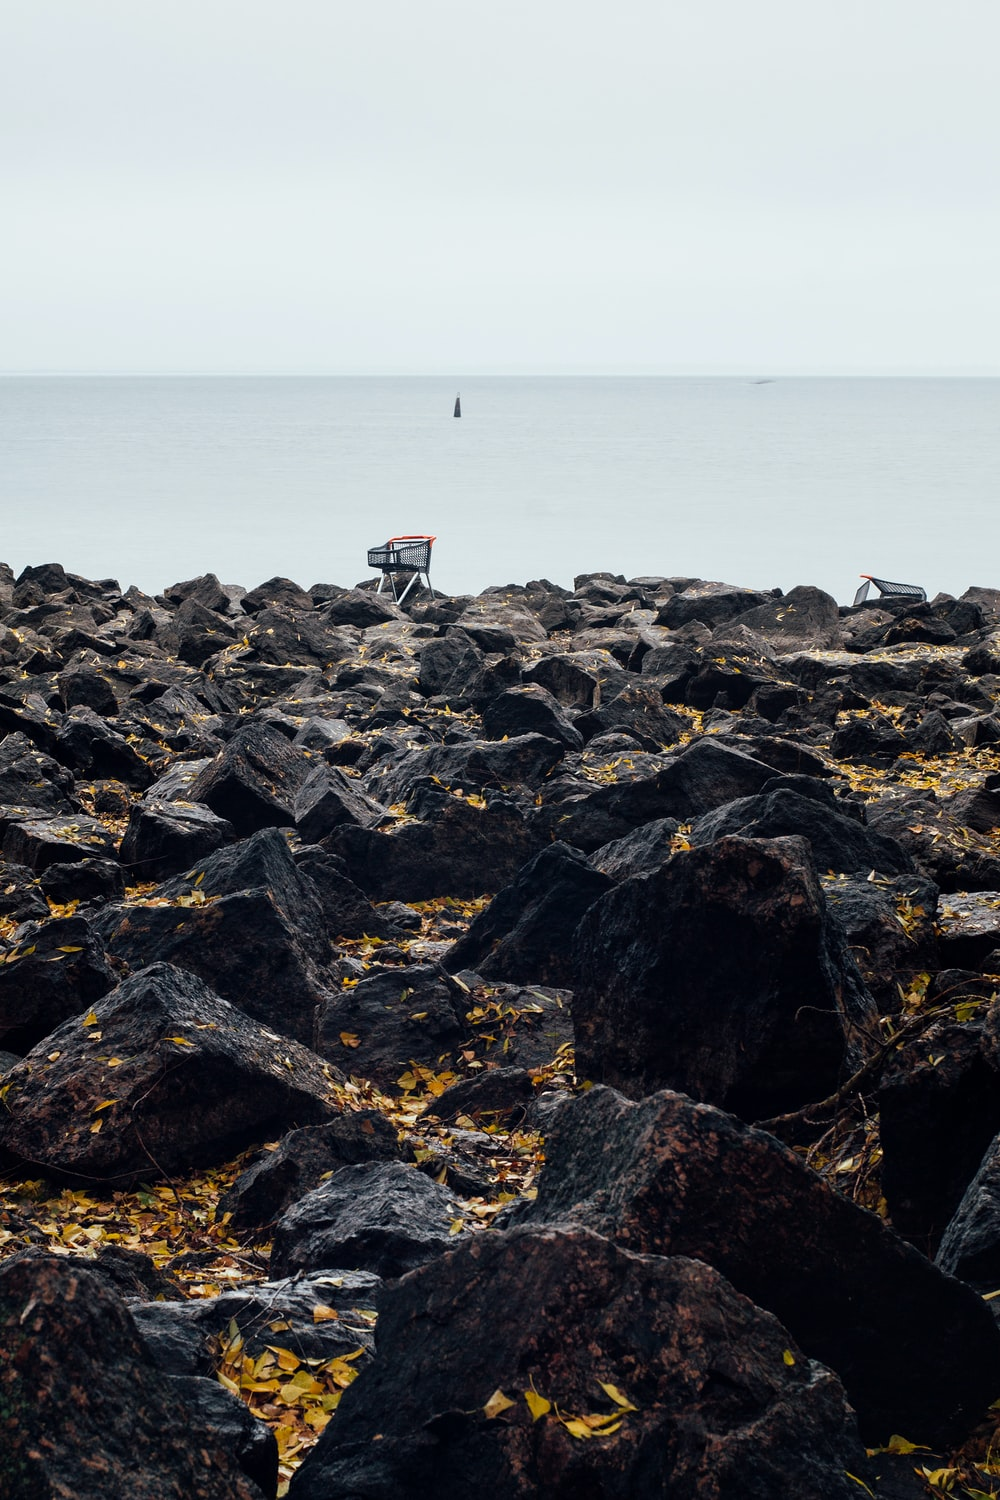 person standing on rocky shore during daytime